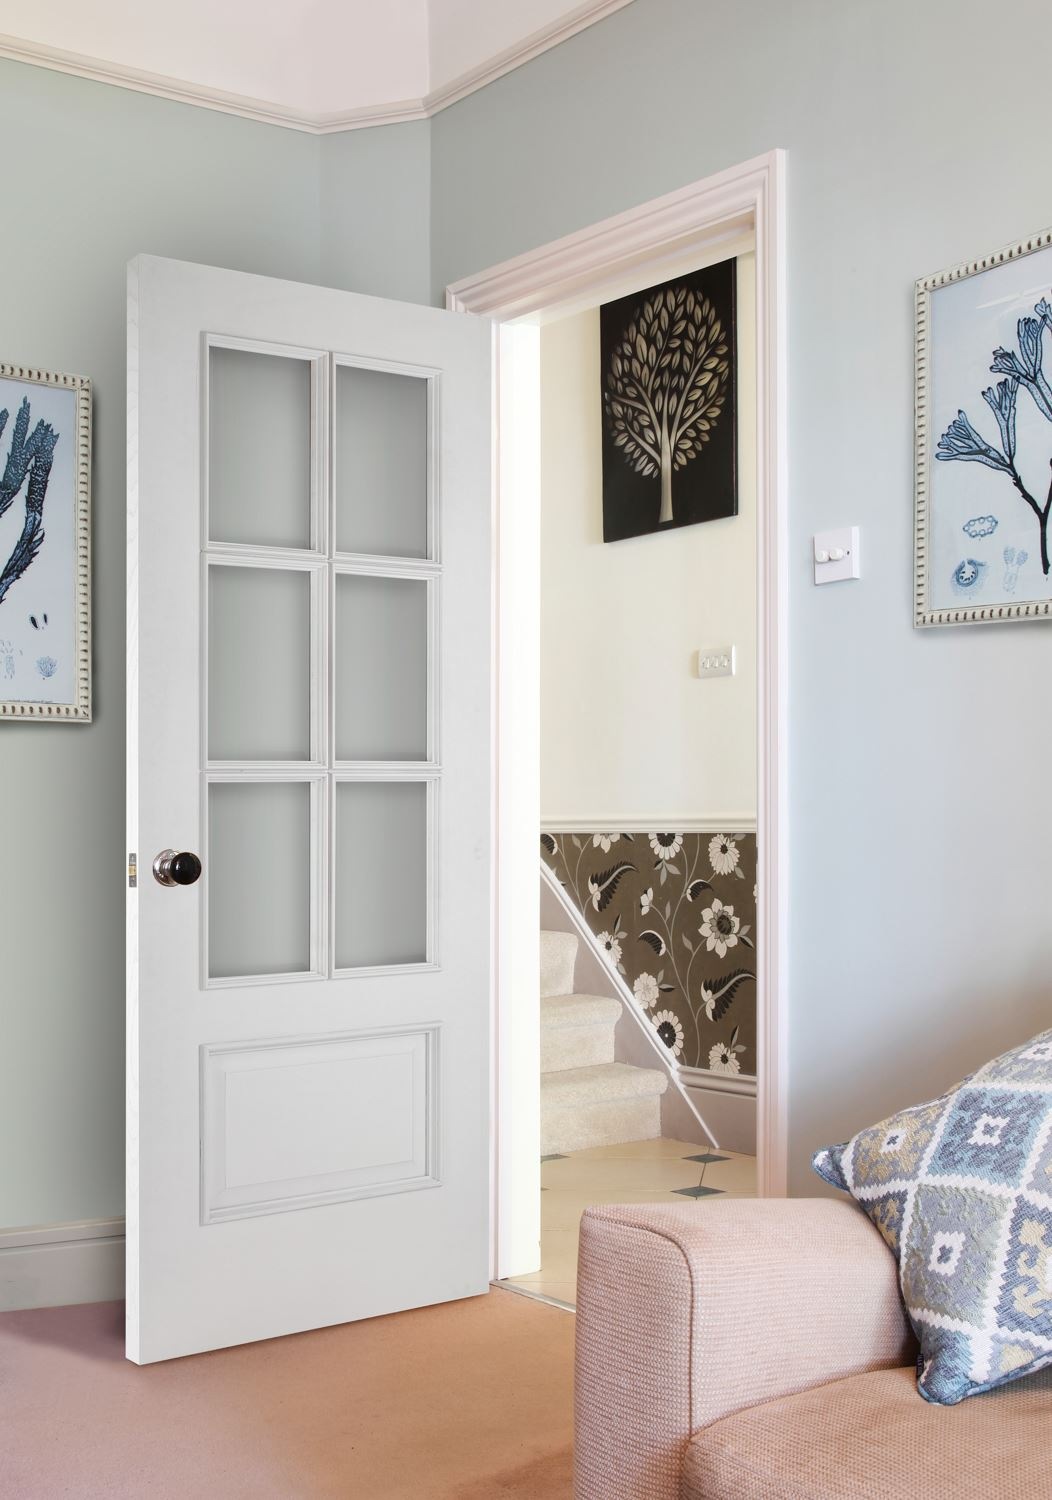 Iris 6 Light White Bespoke Door Internal Doors Charles